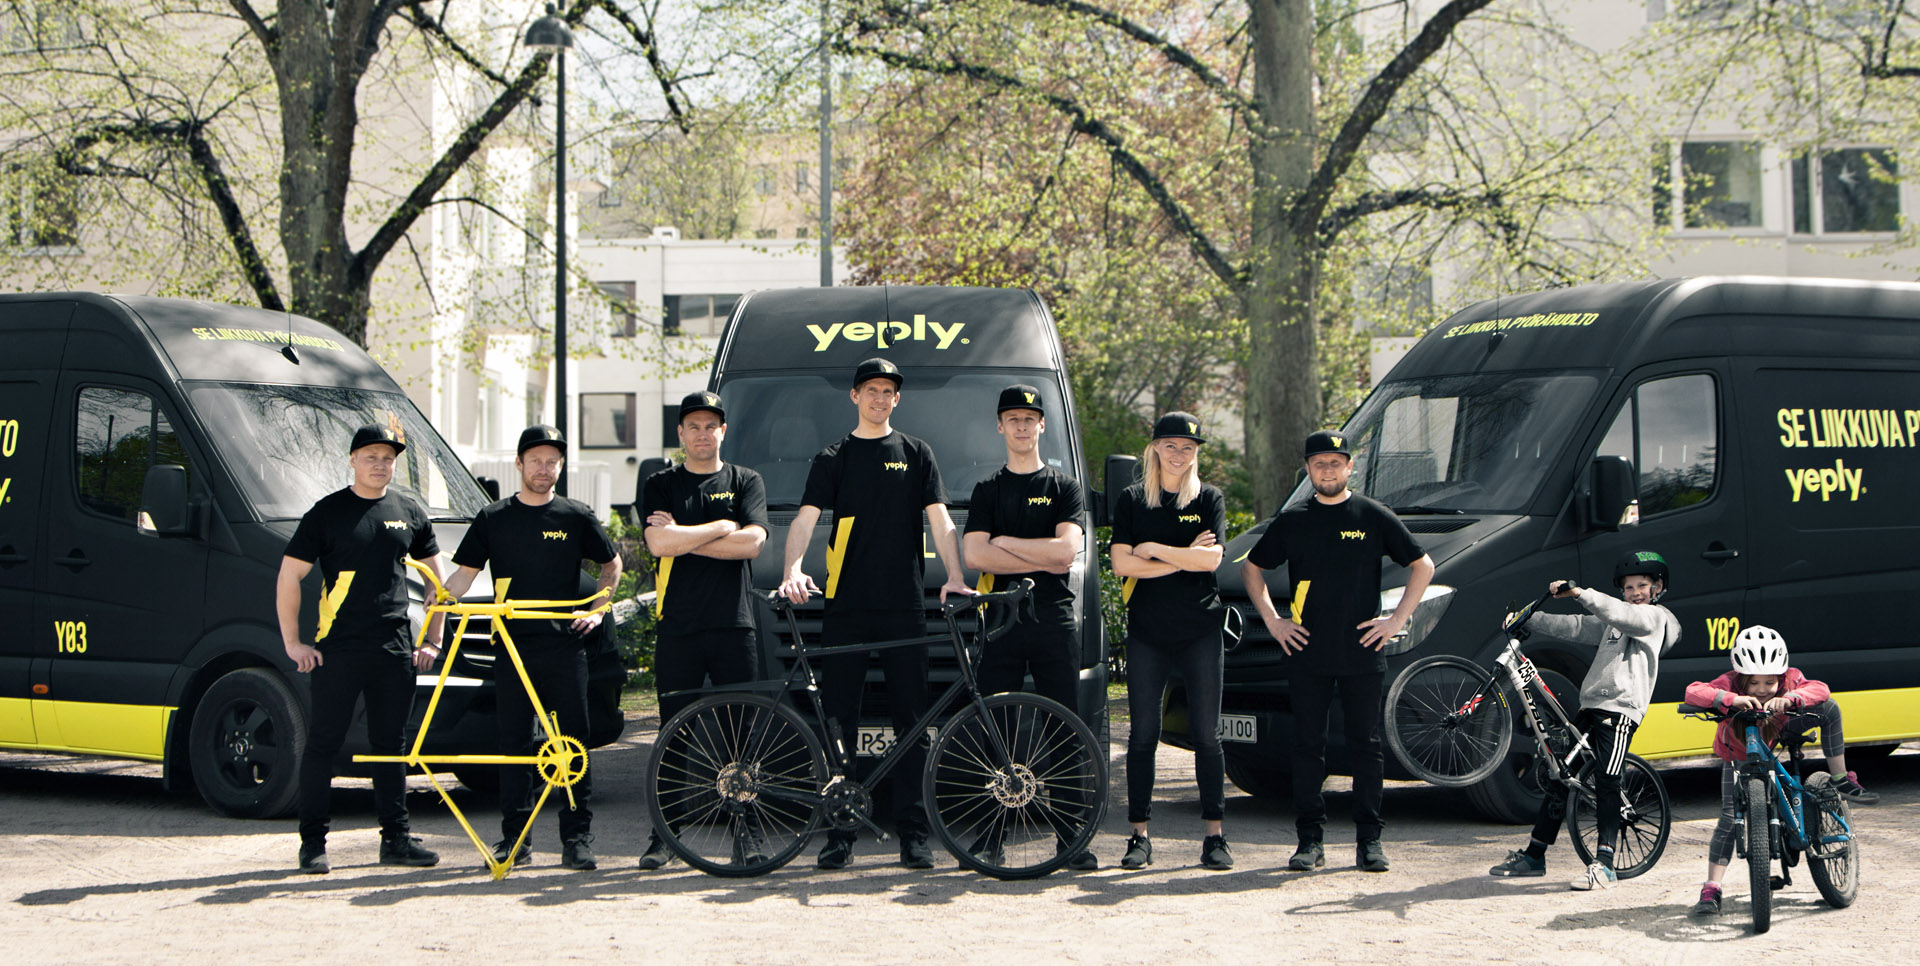 In a model inspired by ice cream trucks, Yeply's mobile bike repair shops drive around different neighbourhoods and serve business and consumer customers.